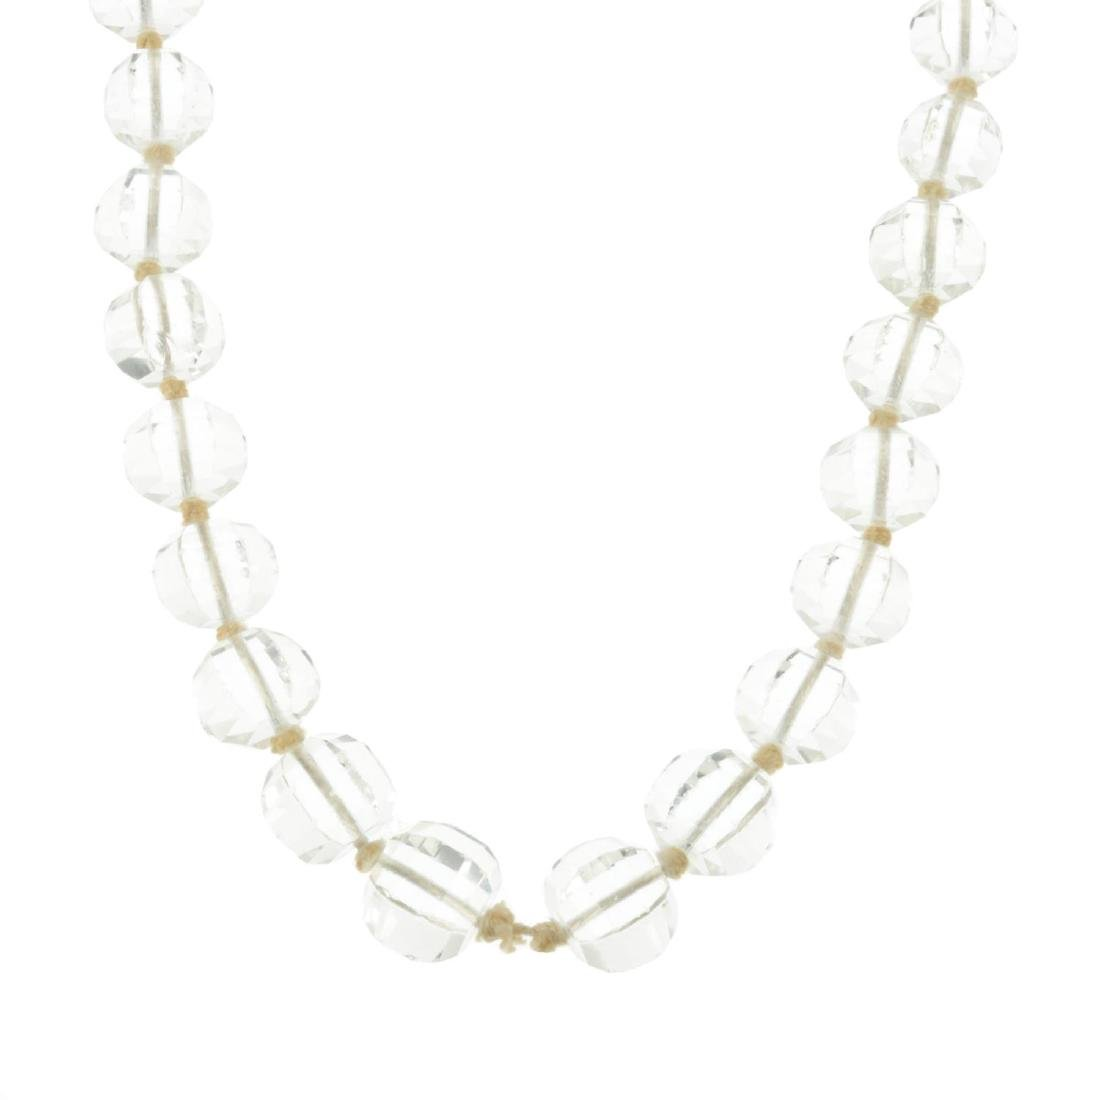 A faceted rock crystal bead necklace. The graduated